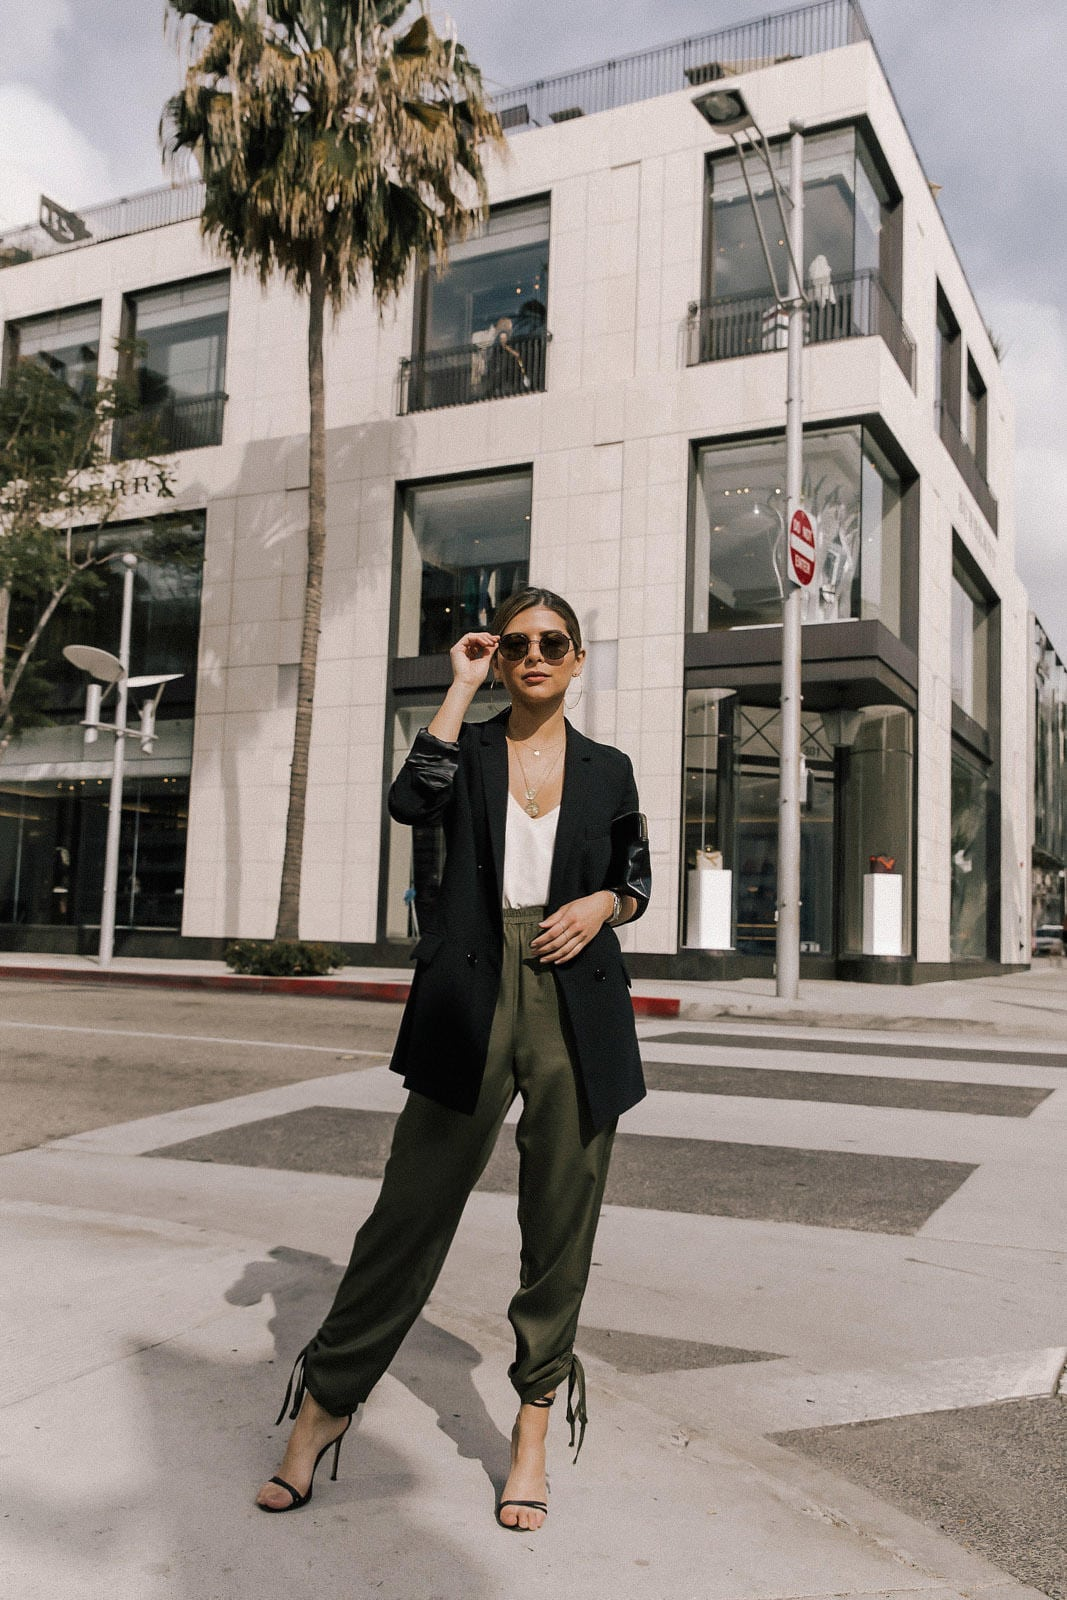 Green joggers, elegant joggers, chic style, cool girl style | TheGirlFromPanama.com